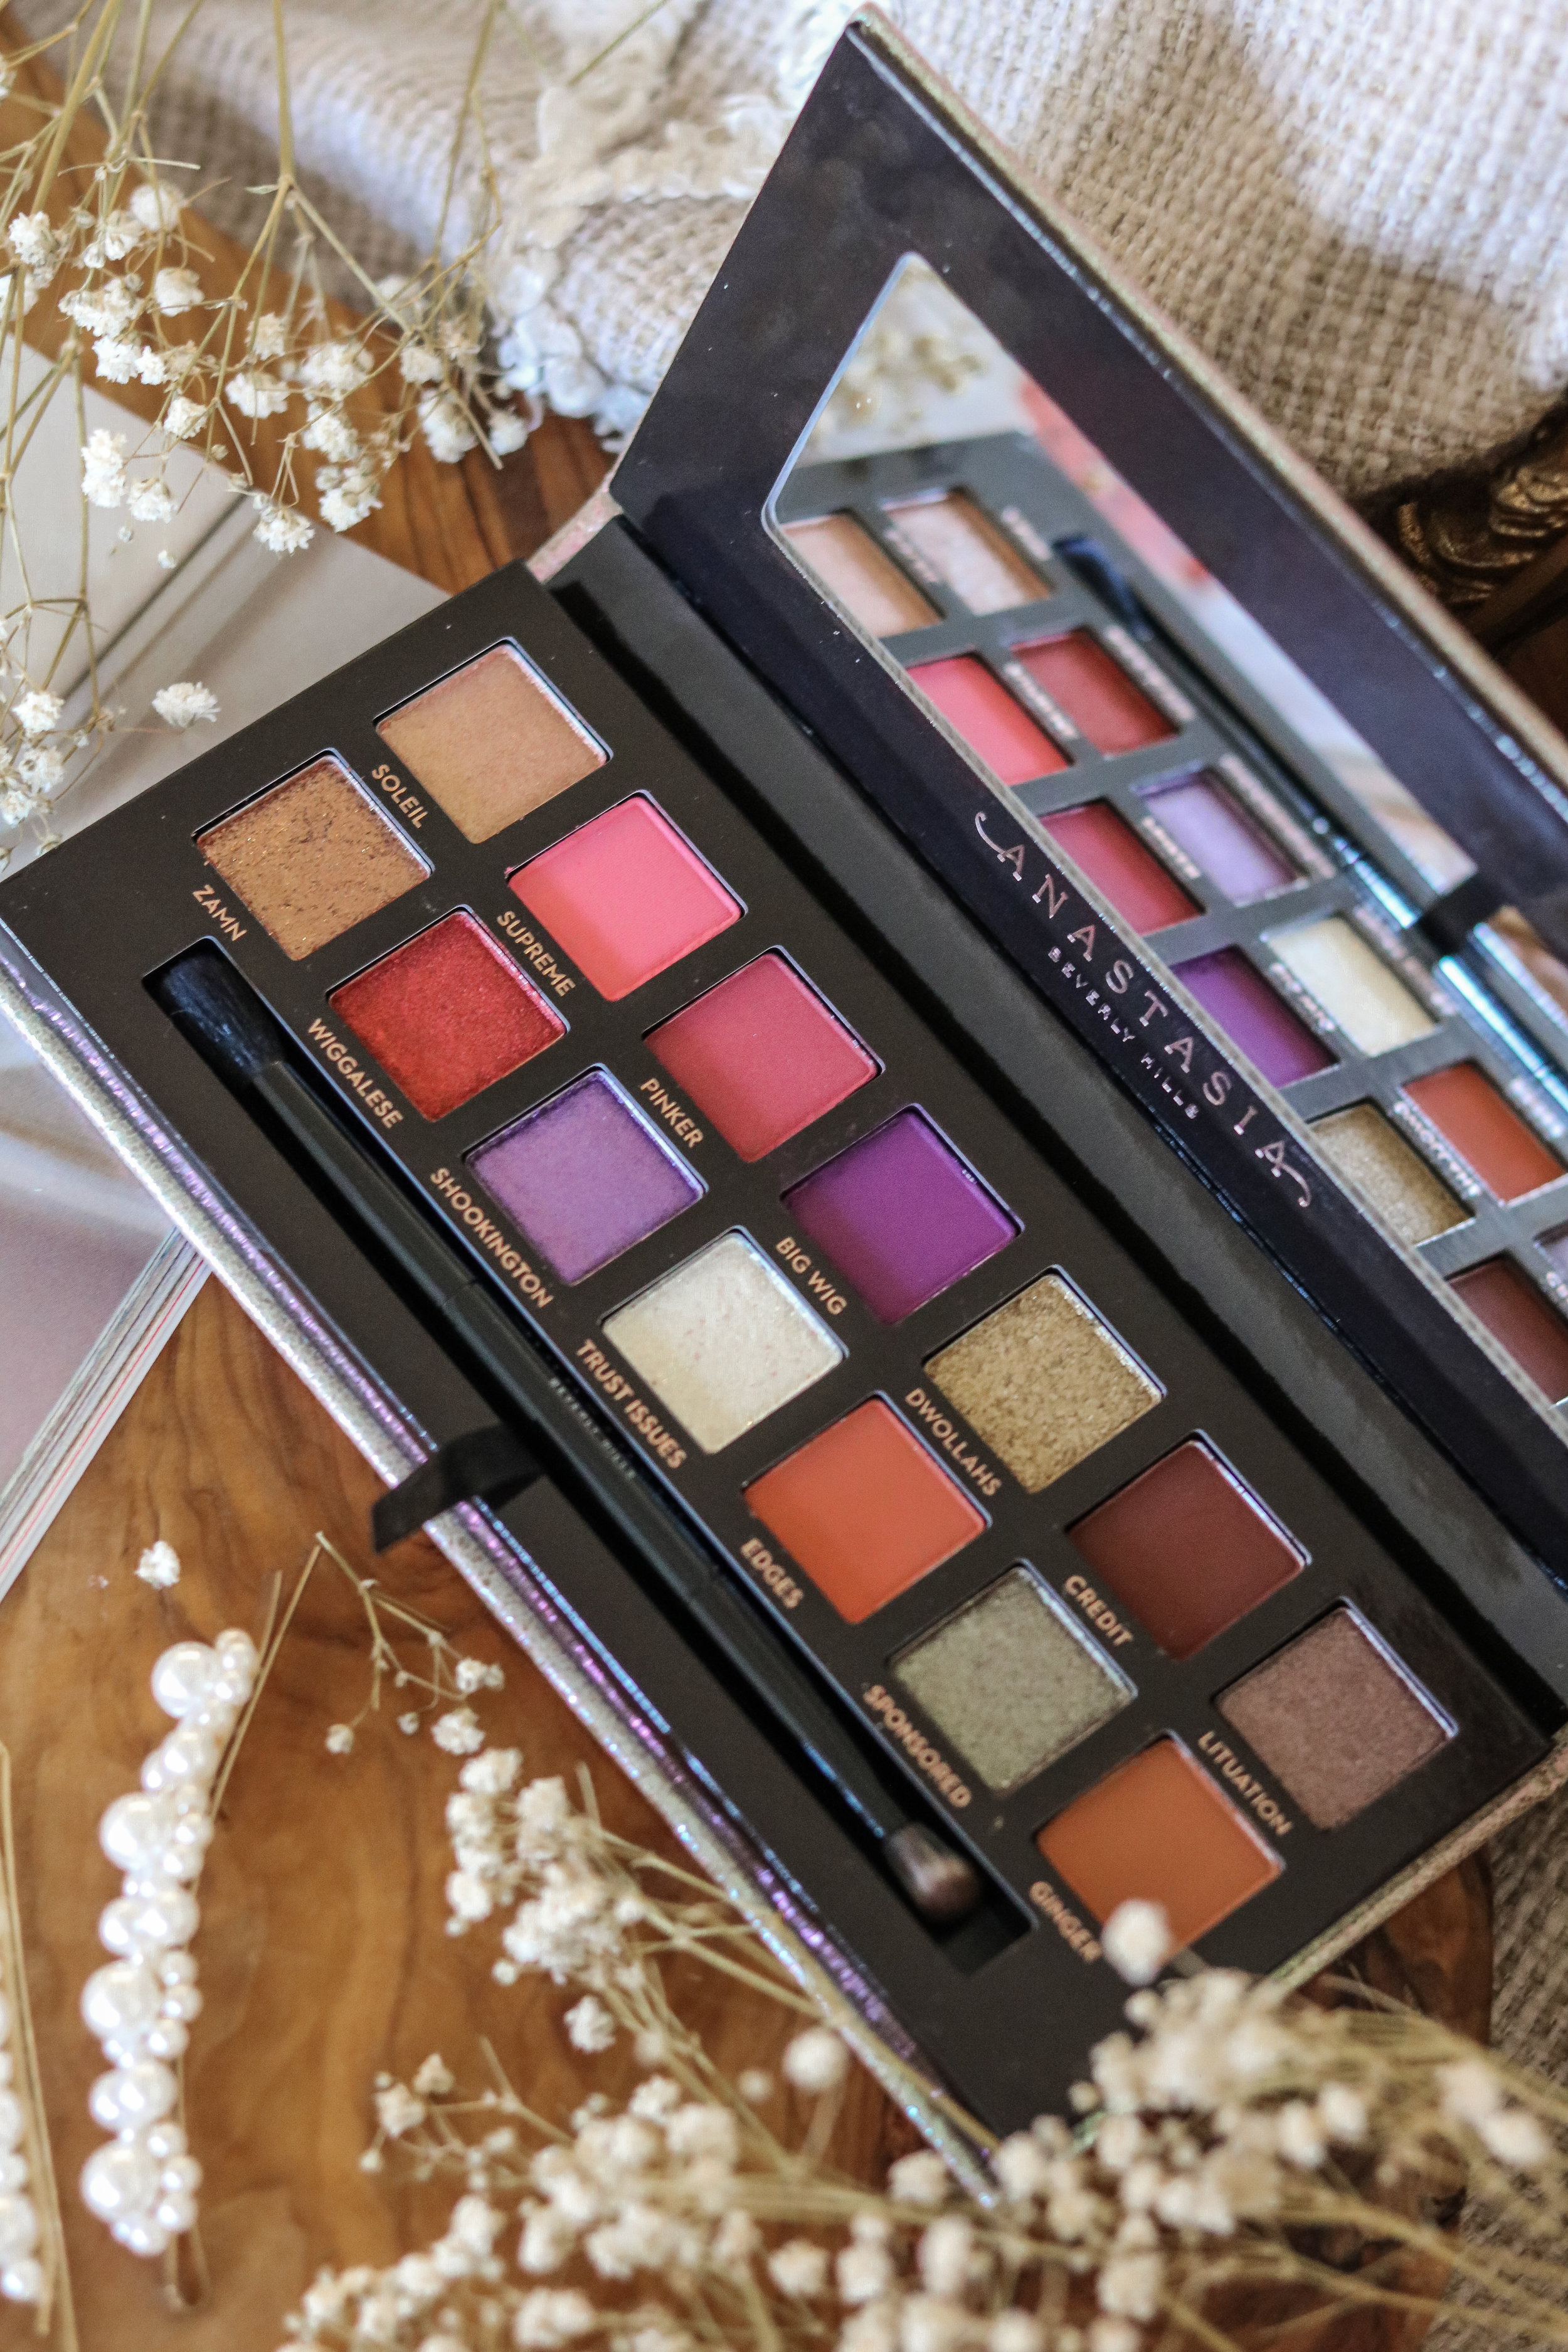 The Hungarian Brunette jackie aina palette